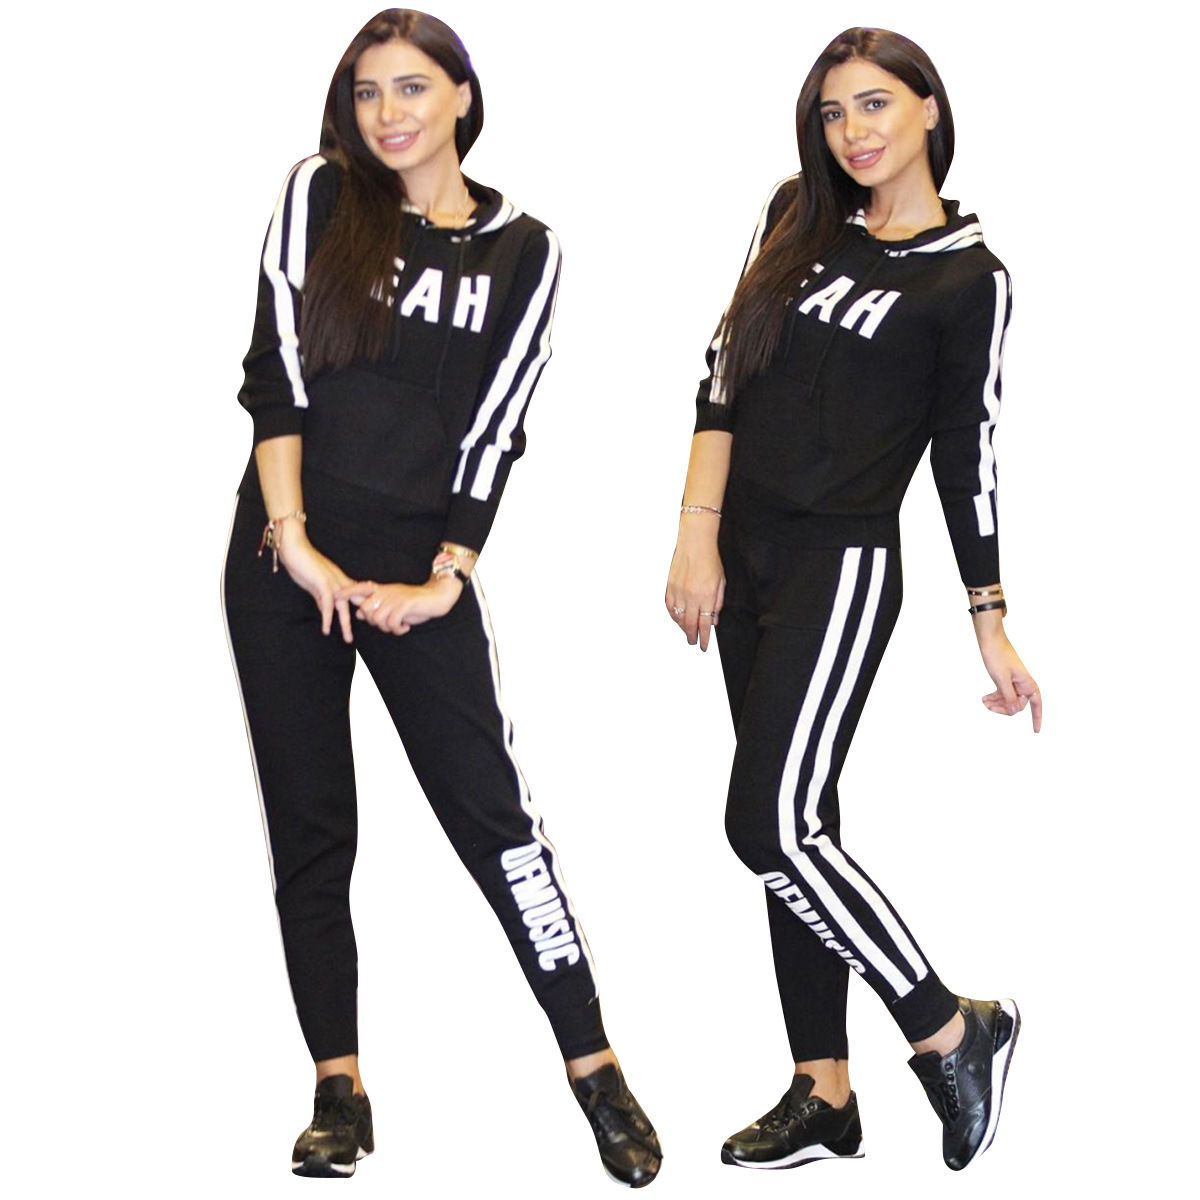 ALS064 Cross Border For Supply Of Goods Europe And America WOMEN'S Dress Joint Hat Threaded Braid Casual Fashion & Sports Set